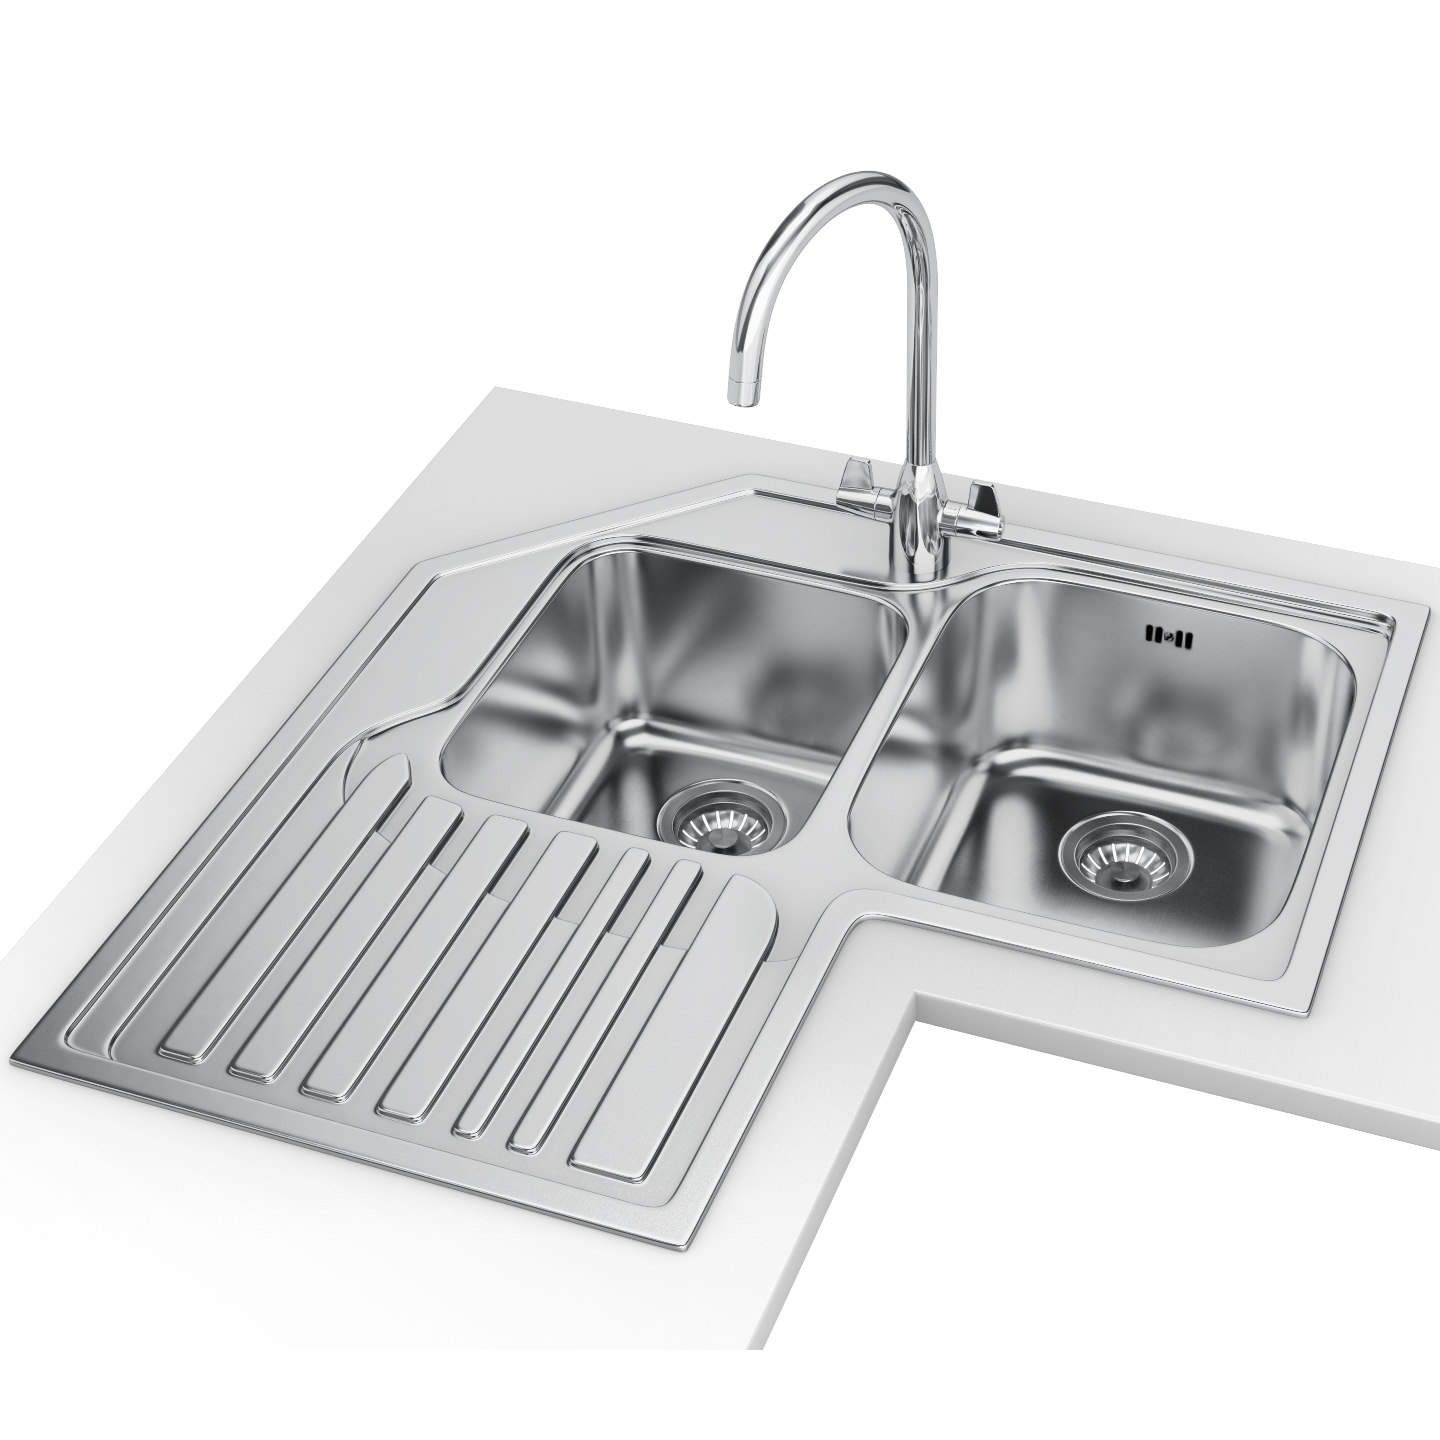 Butterfly Stainless Steel Kitchen Sink